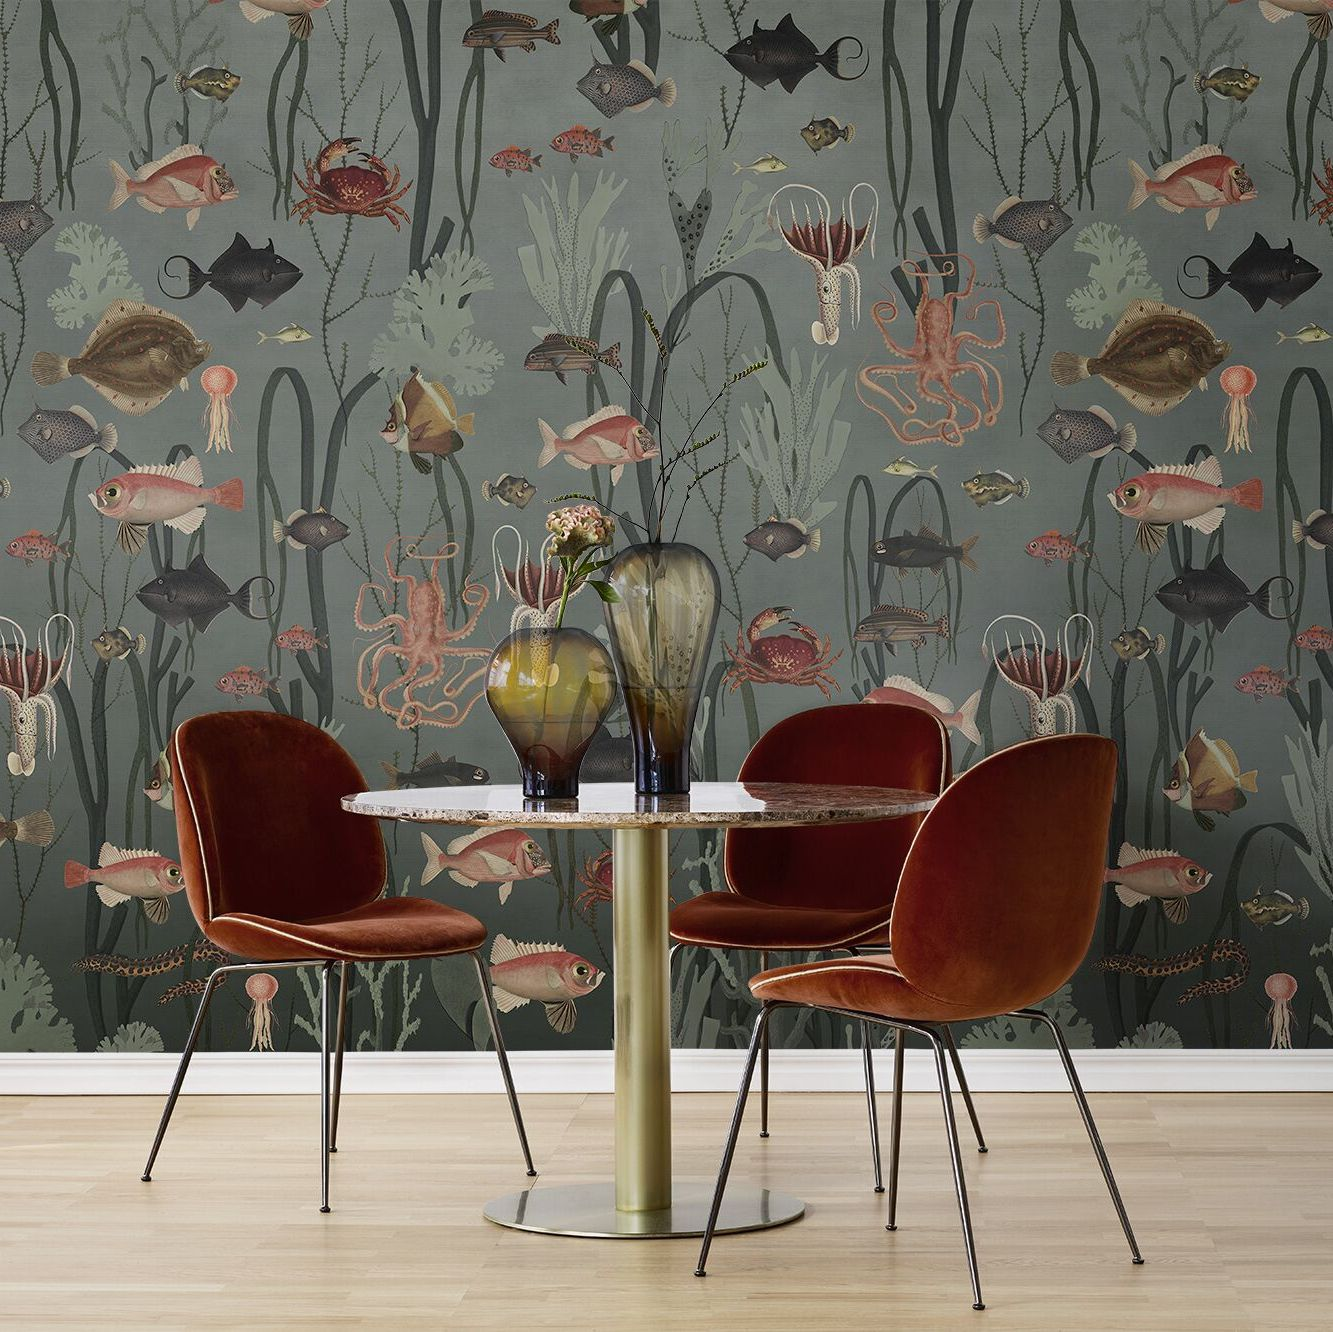 Oxygen Underwater World Mural Wallpaper (SqM)